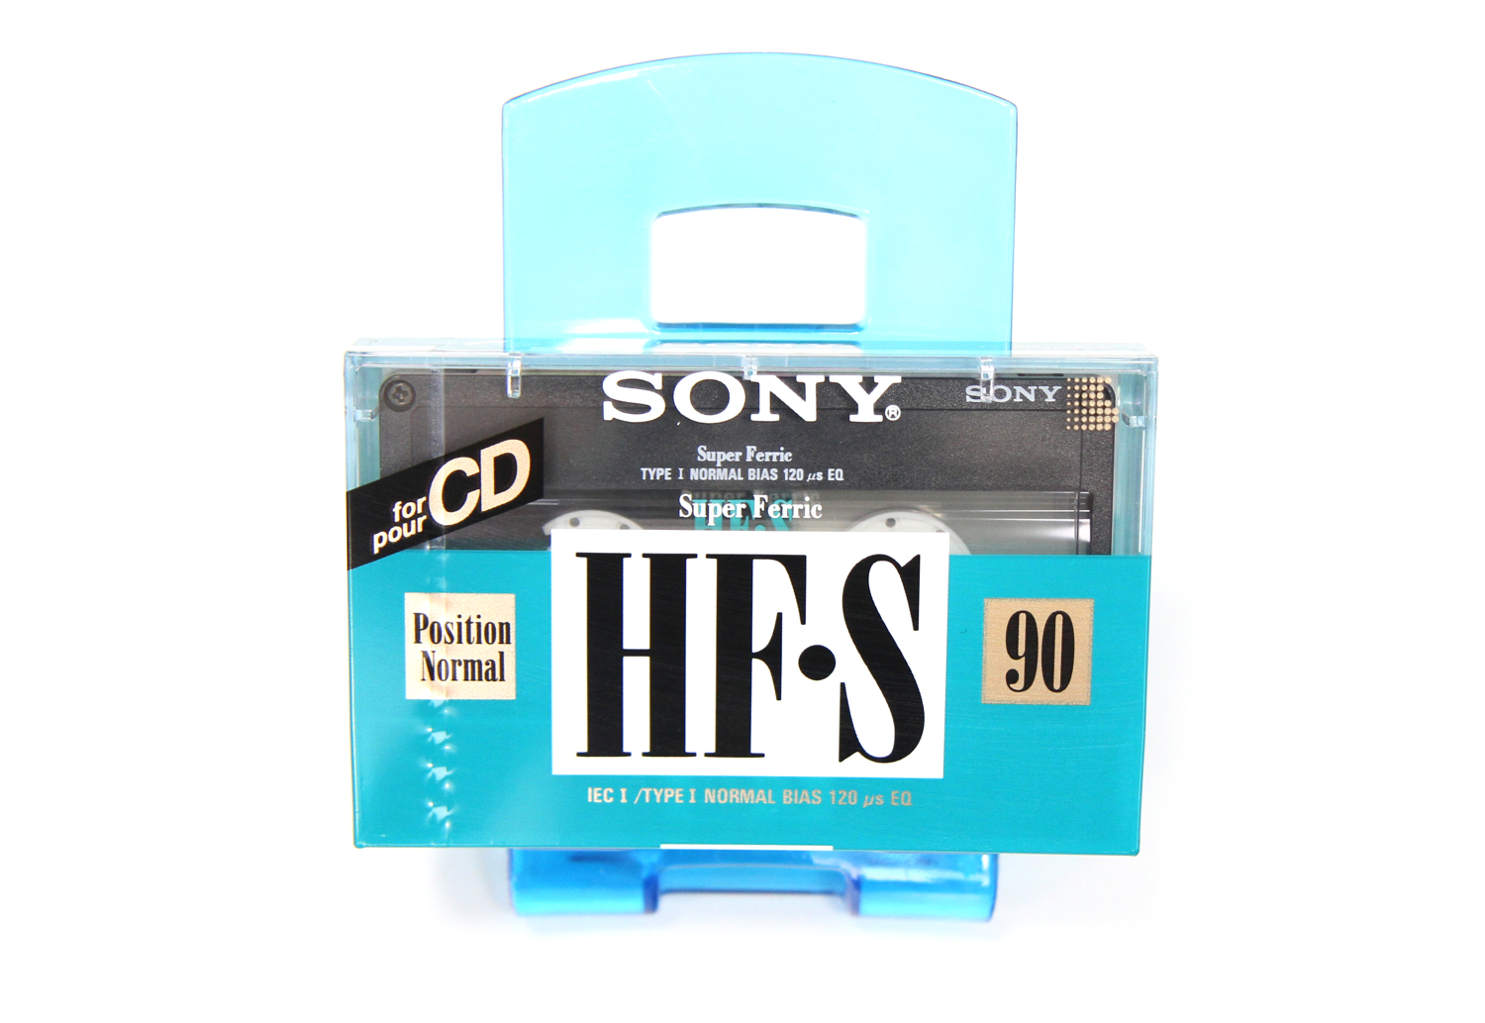 SONY HF-S90 Position Normal